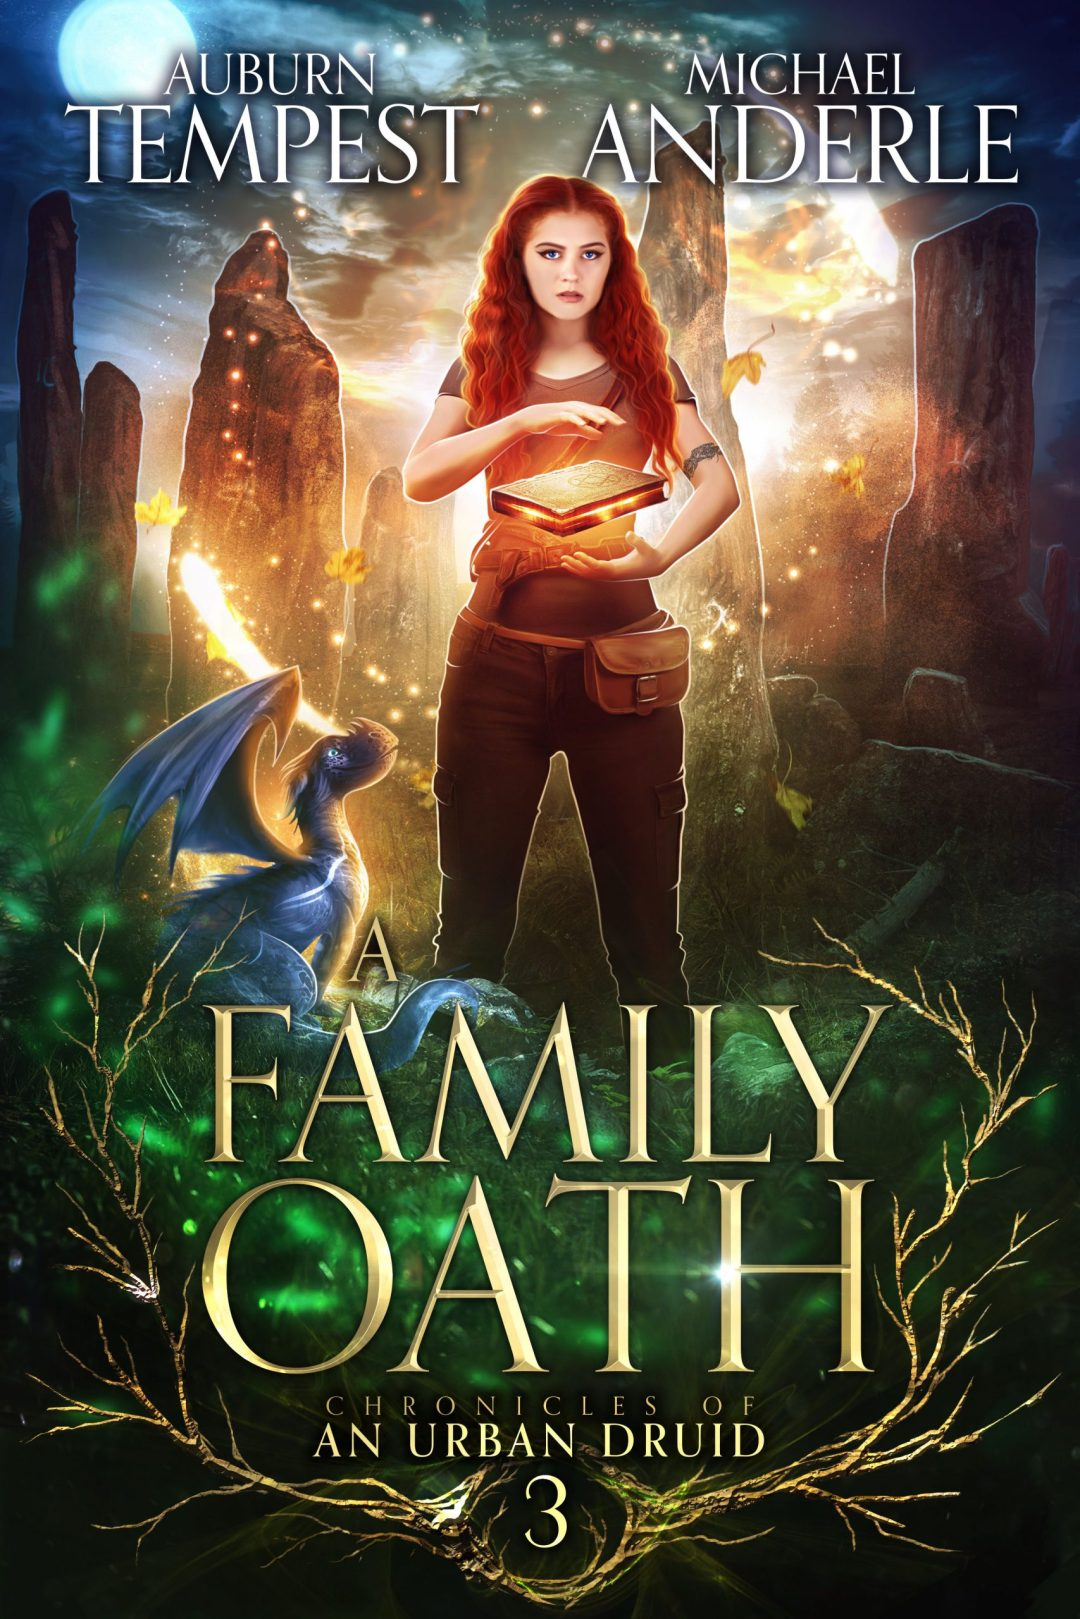 FAMILY OATH E-BOOK COVER